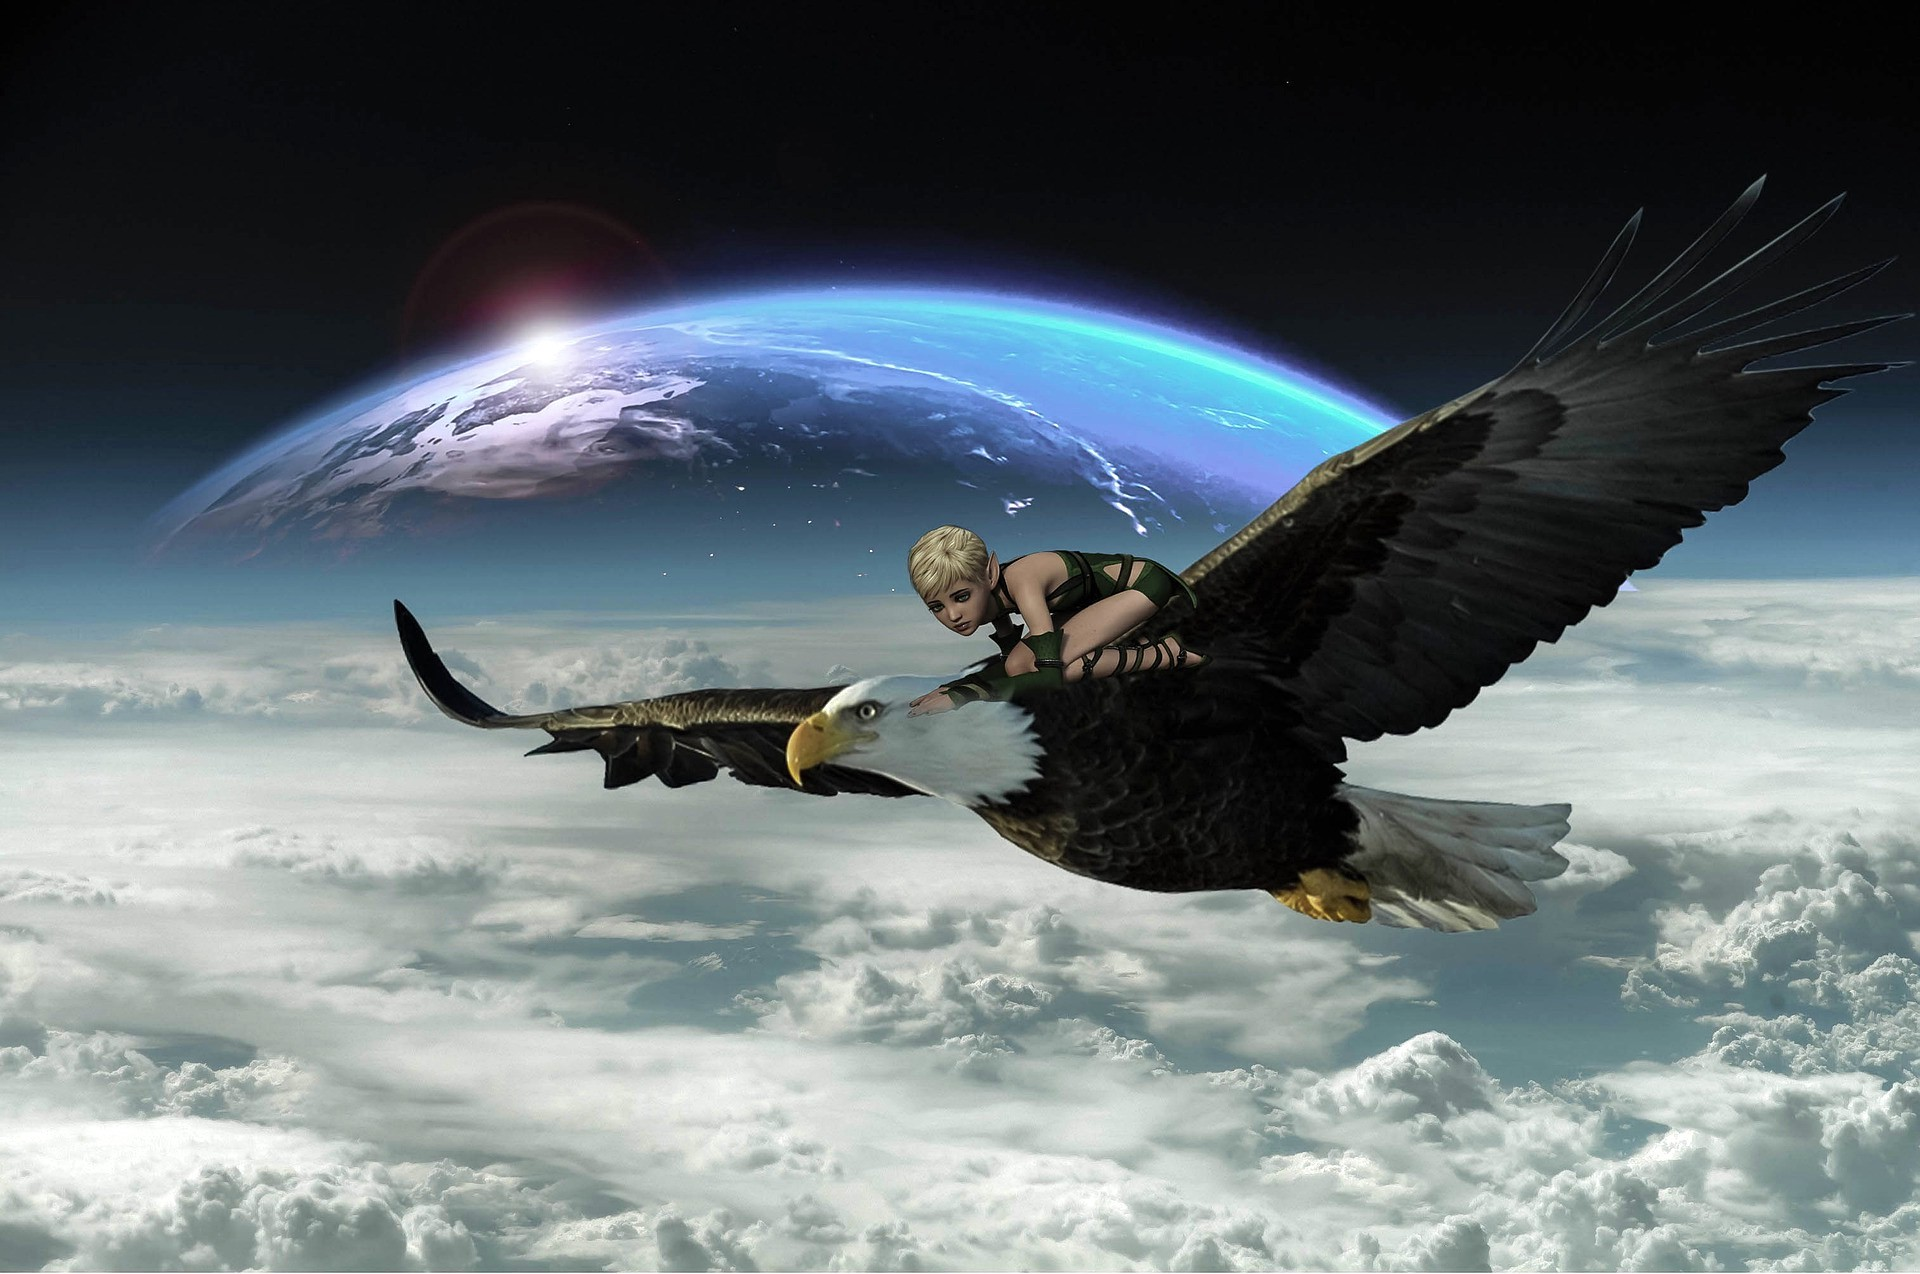 A surreal image of a bald eagle in flight above a dense layer of white clouds. A blue sphere with white markings, resembling planet Earth as seen from space, is in the background and partially hidden by the clouds. A radiant dot shines on the surface of the blue sphere in the same way sunshine is known to reflect on planet Earth. Crouched on the back of the eagle is a young girl with pointed ears like a pixie, short cropped blond hair and a sleeveless-legless black bodysuit.